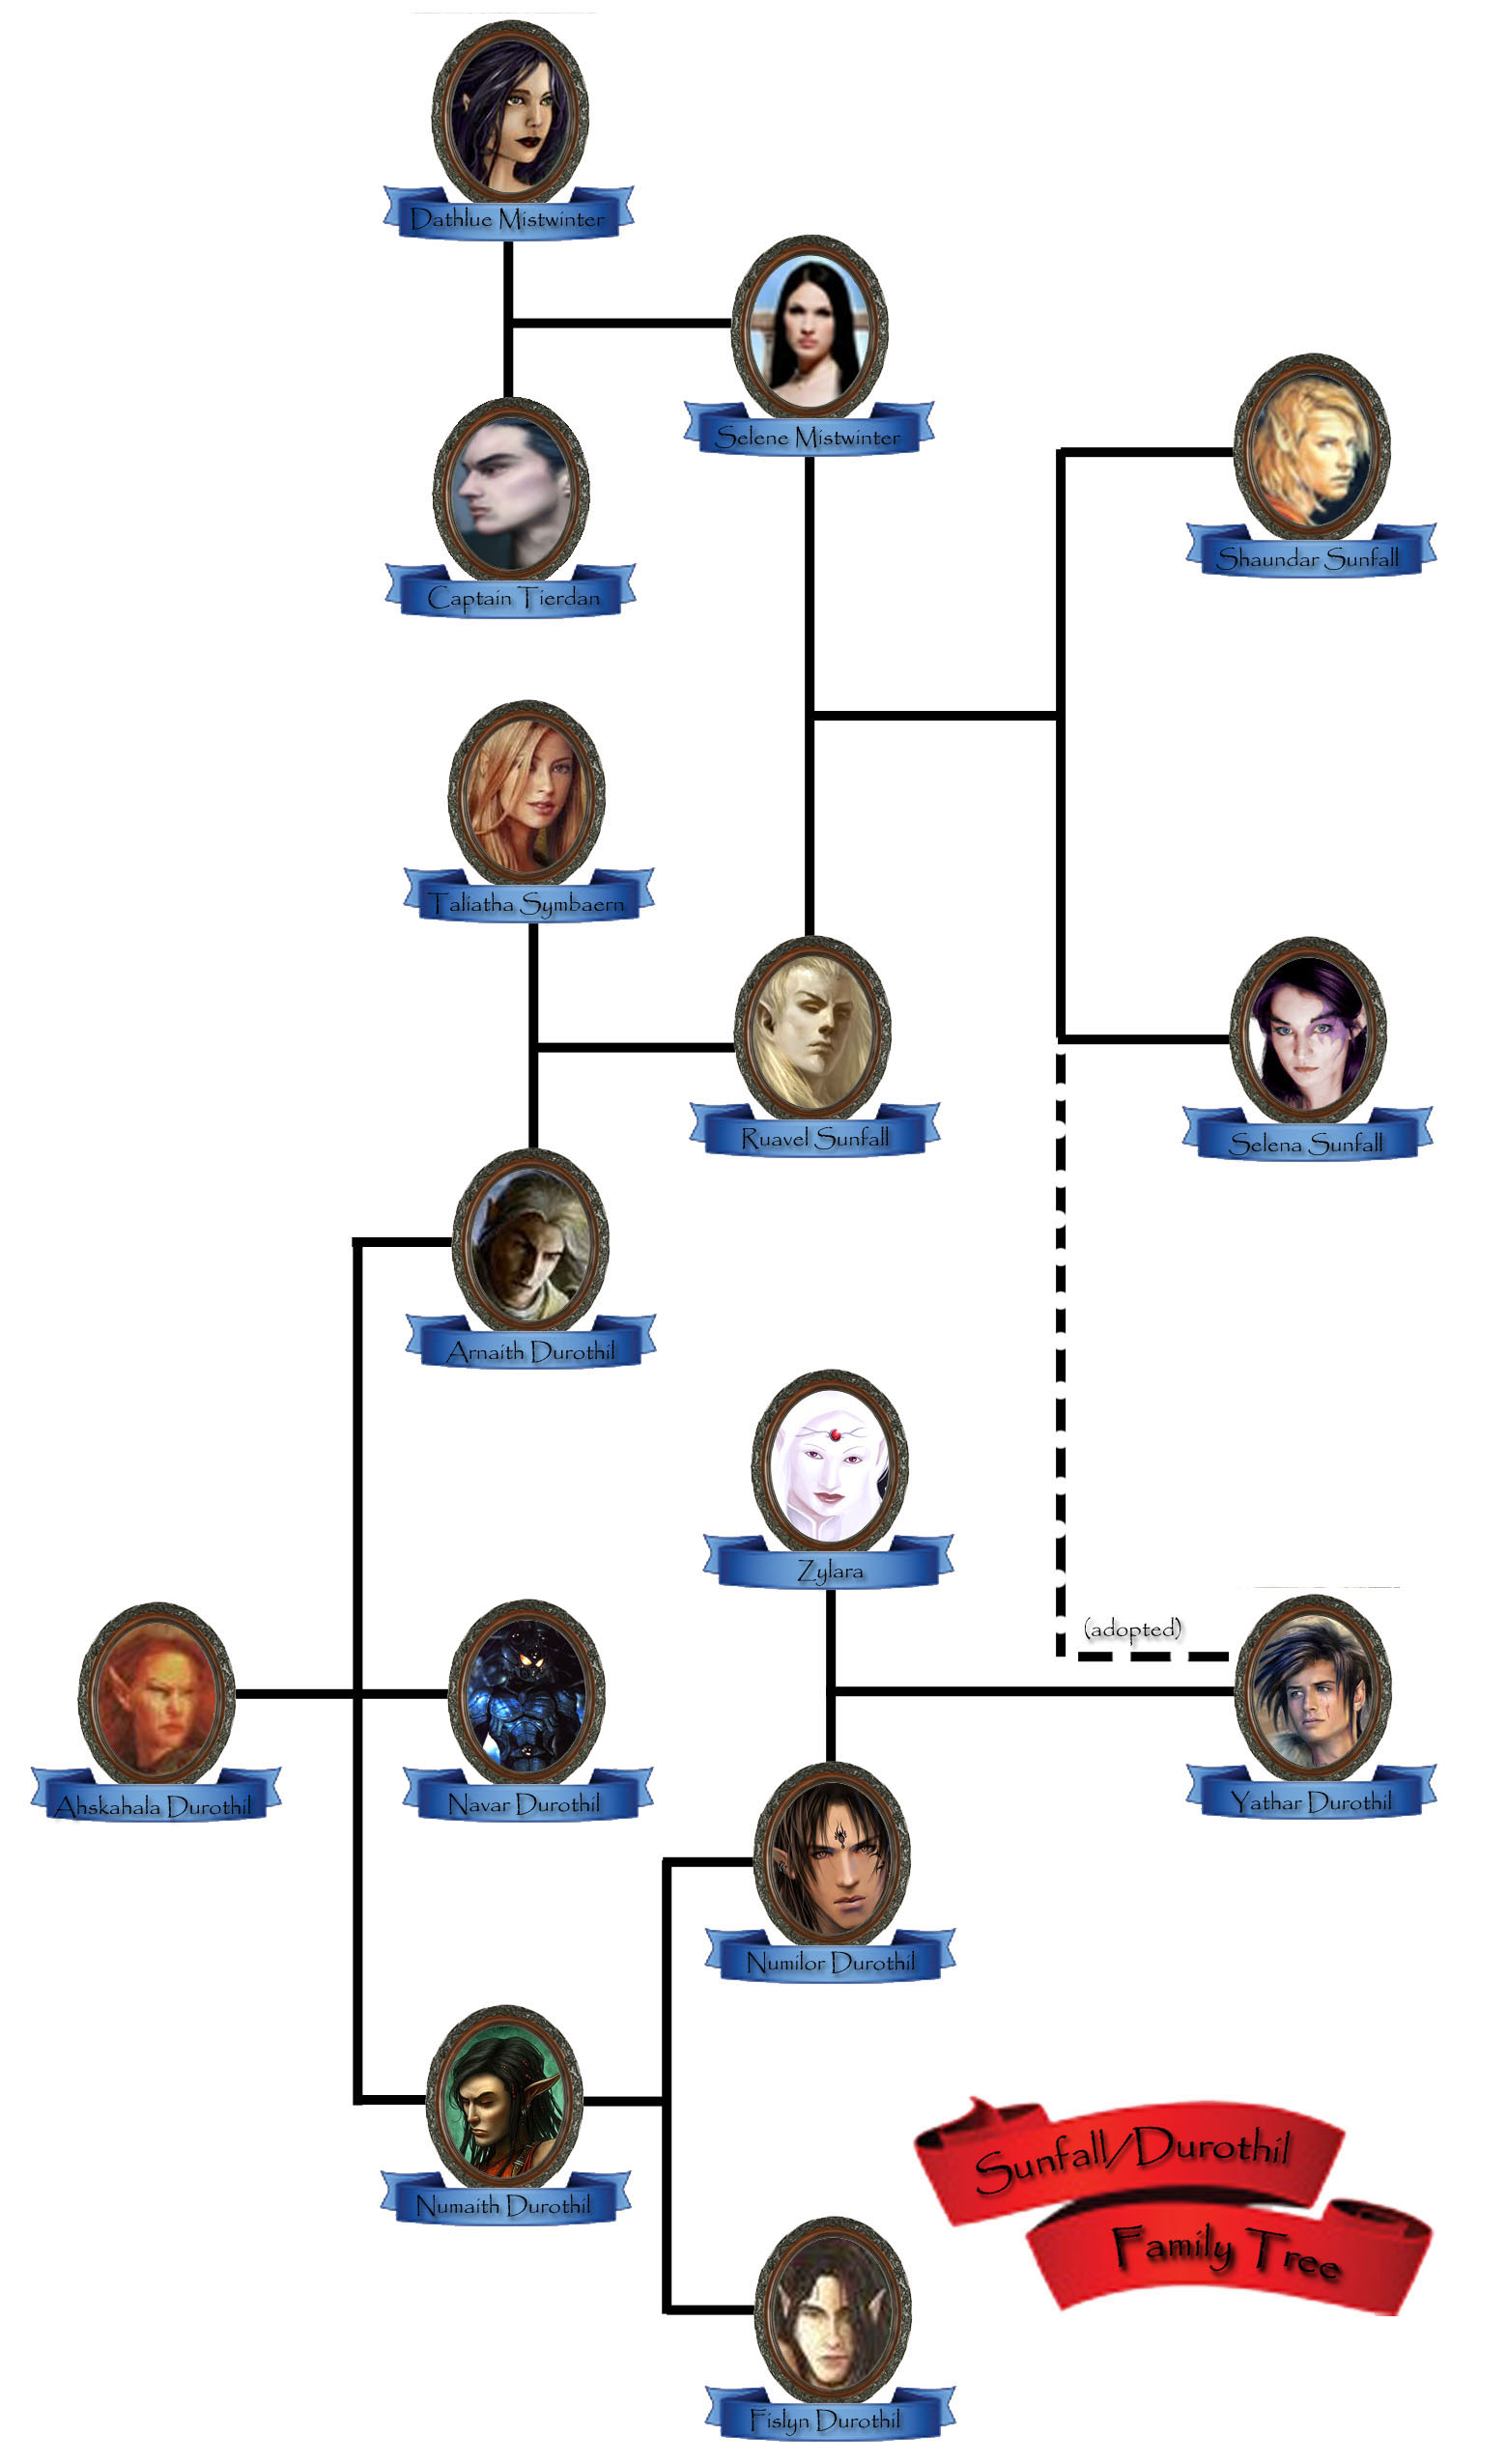 Durothil / Sunfall Family Tree